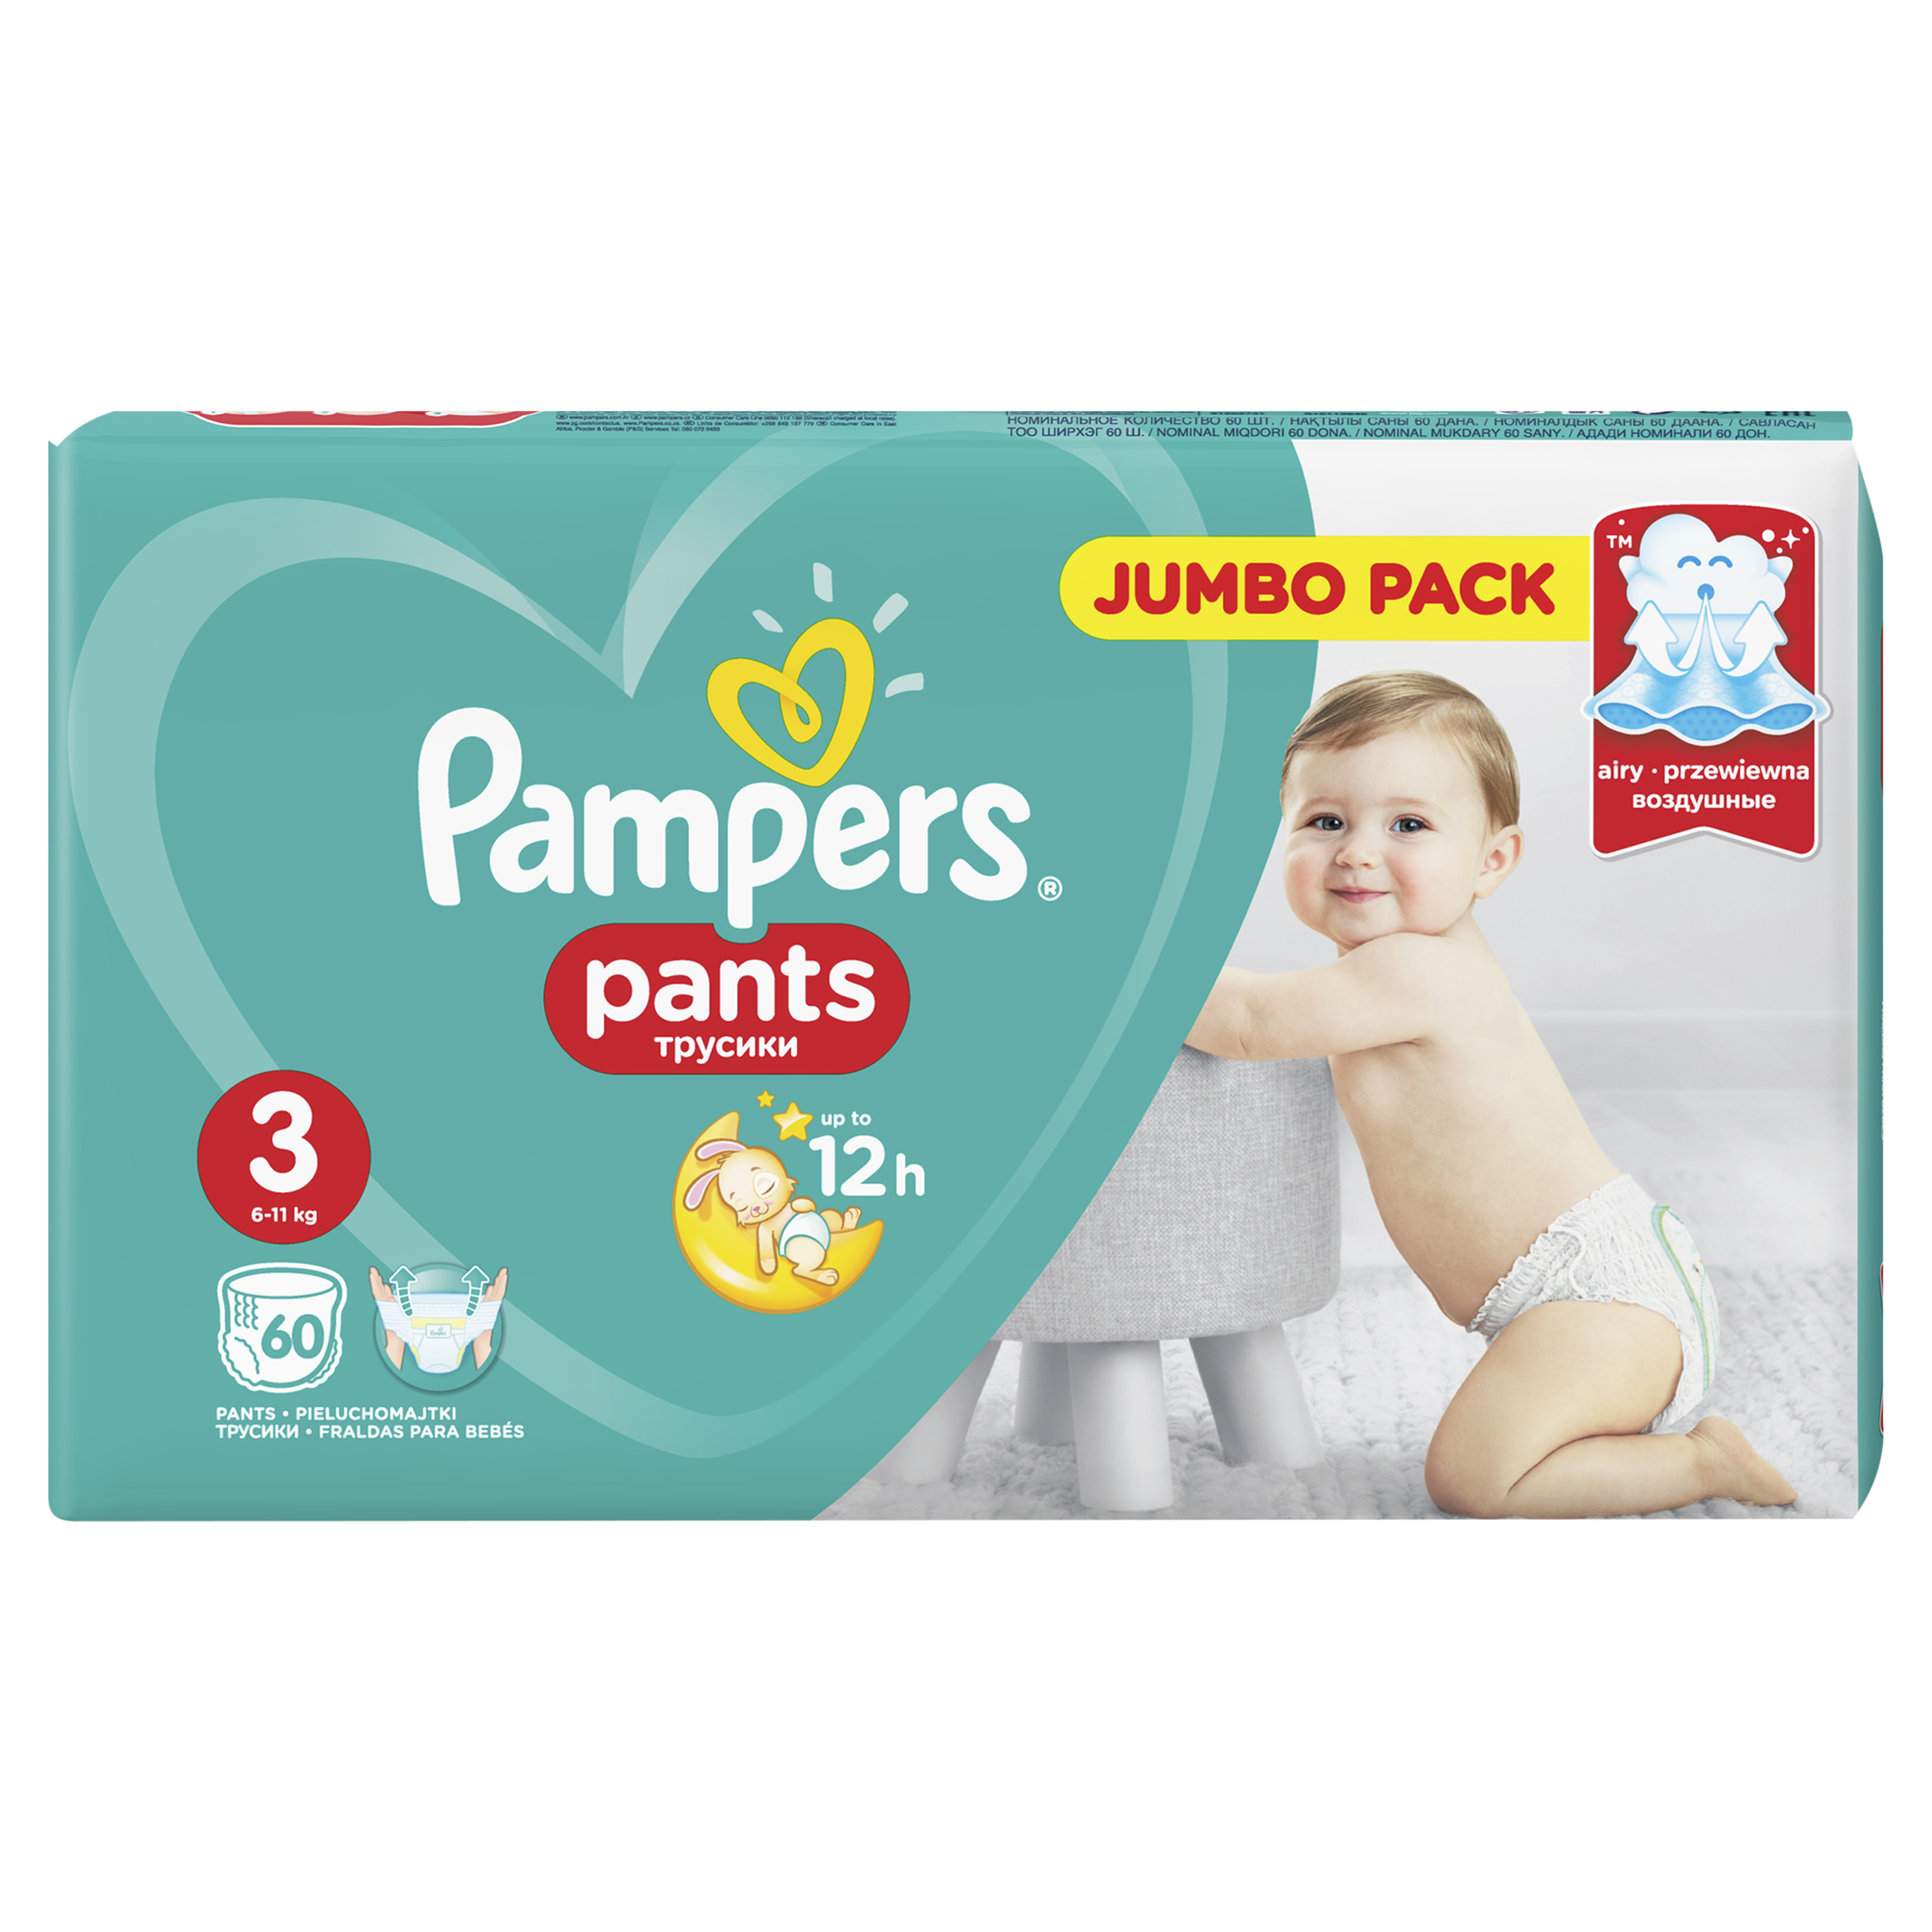 f0b1e47a564 Πάνα βρακάκι Pampers Pants no3 6-11kg | Panesgiaolous